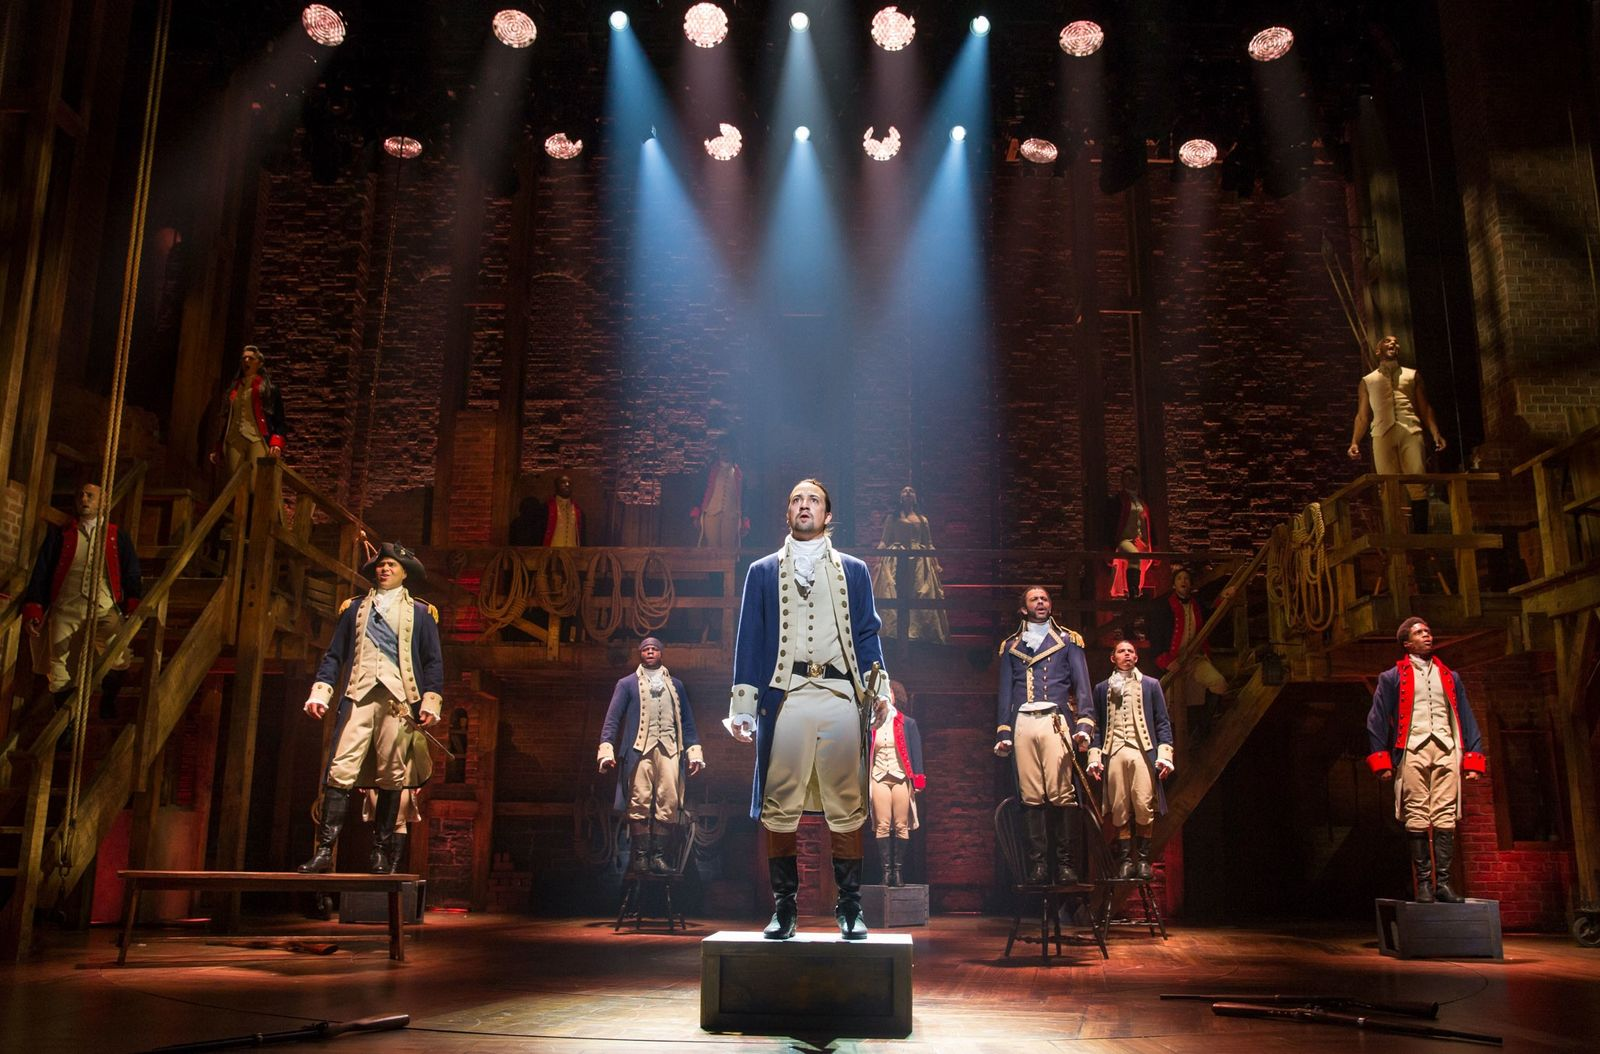 They lived, they died, but 'Hamilton' didn't tell their story